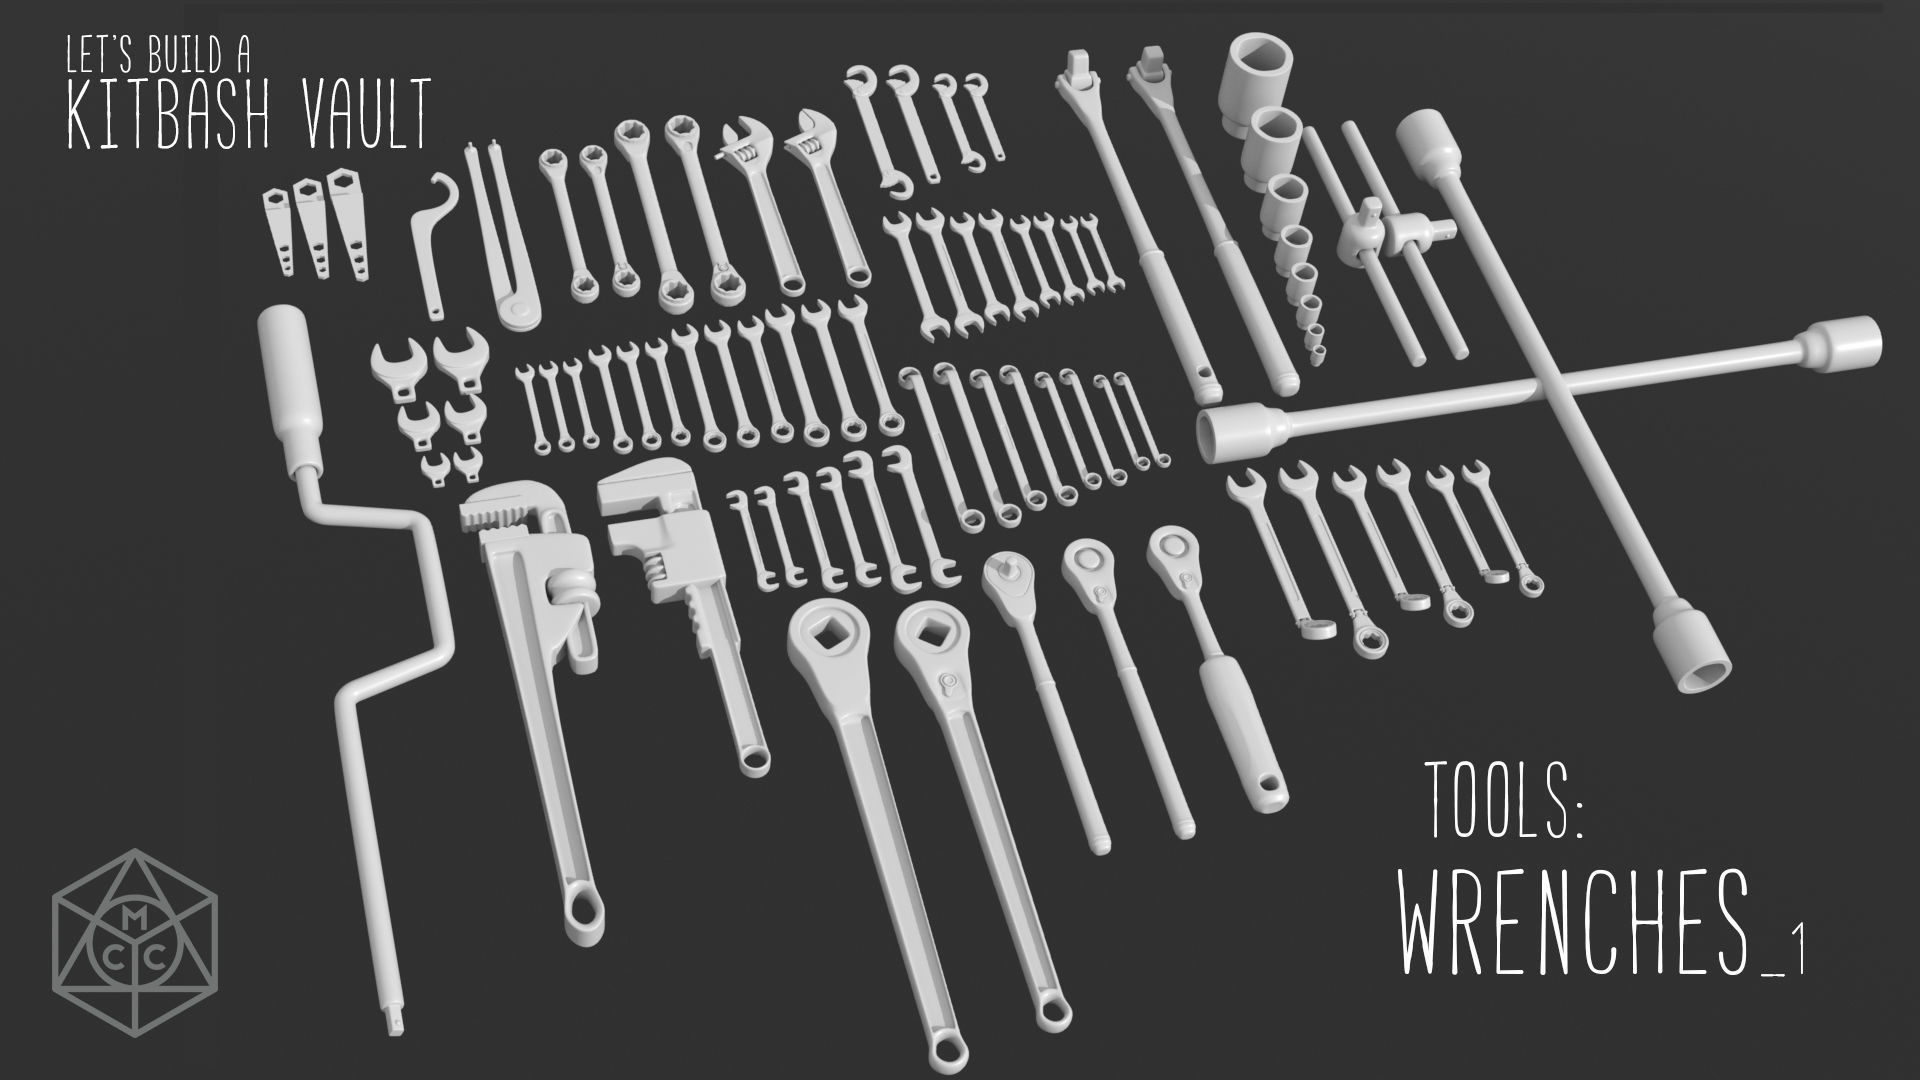 Kitbash Vault Tools Wrenches